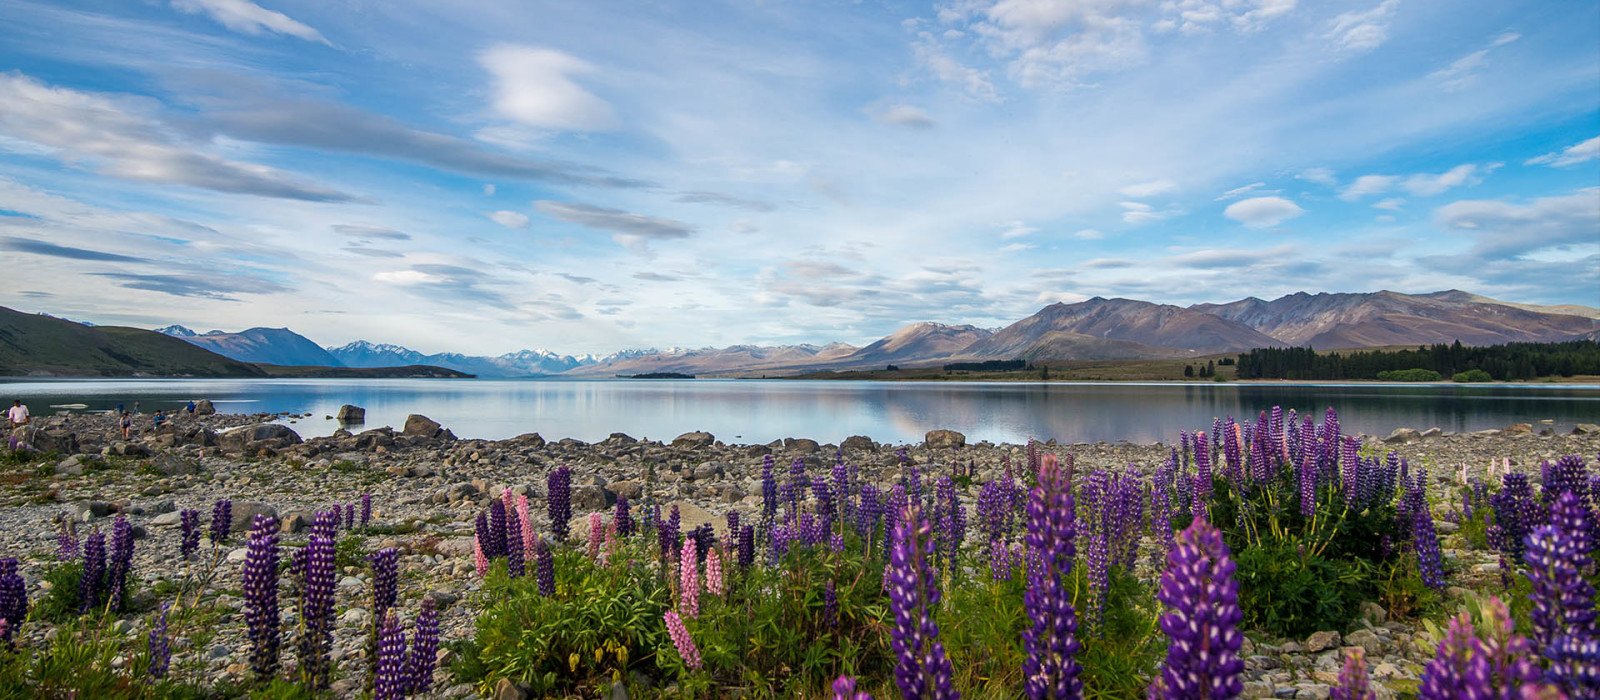 Destination Tekapo New Zealand